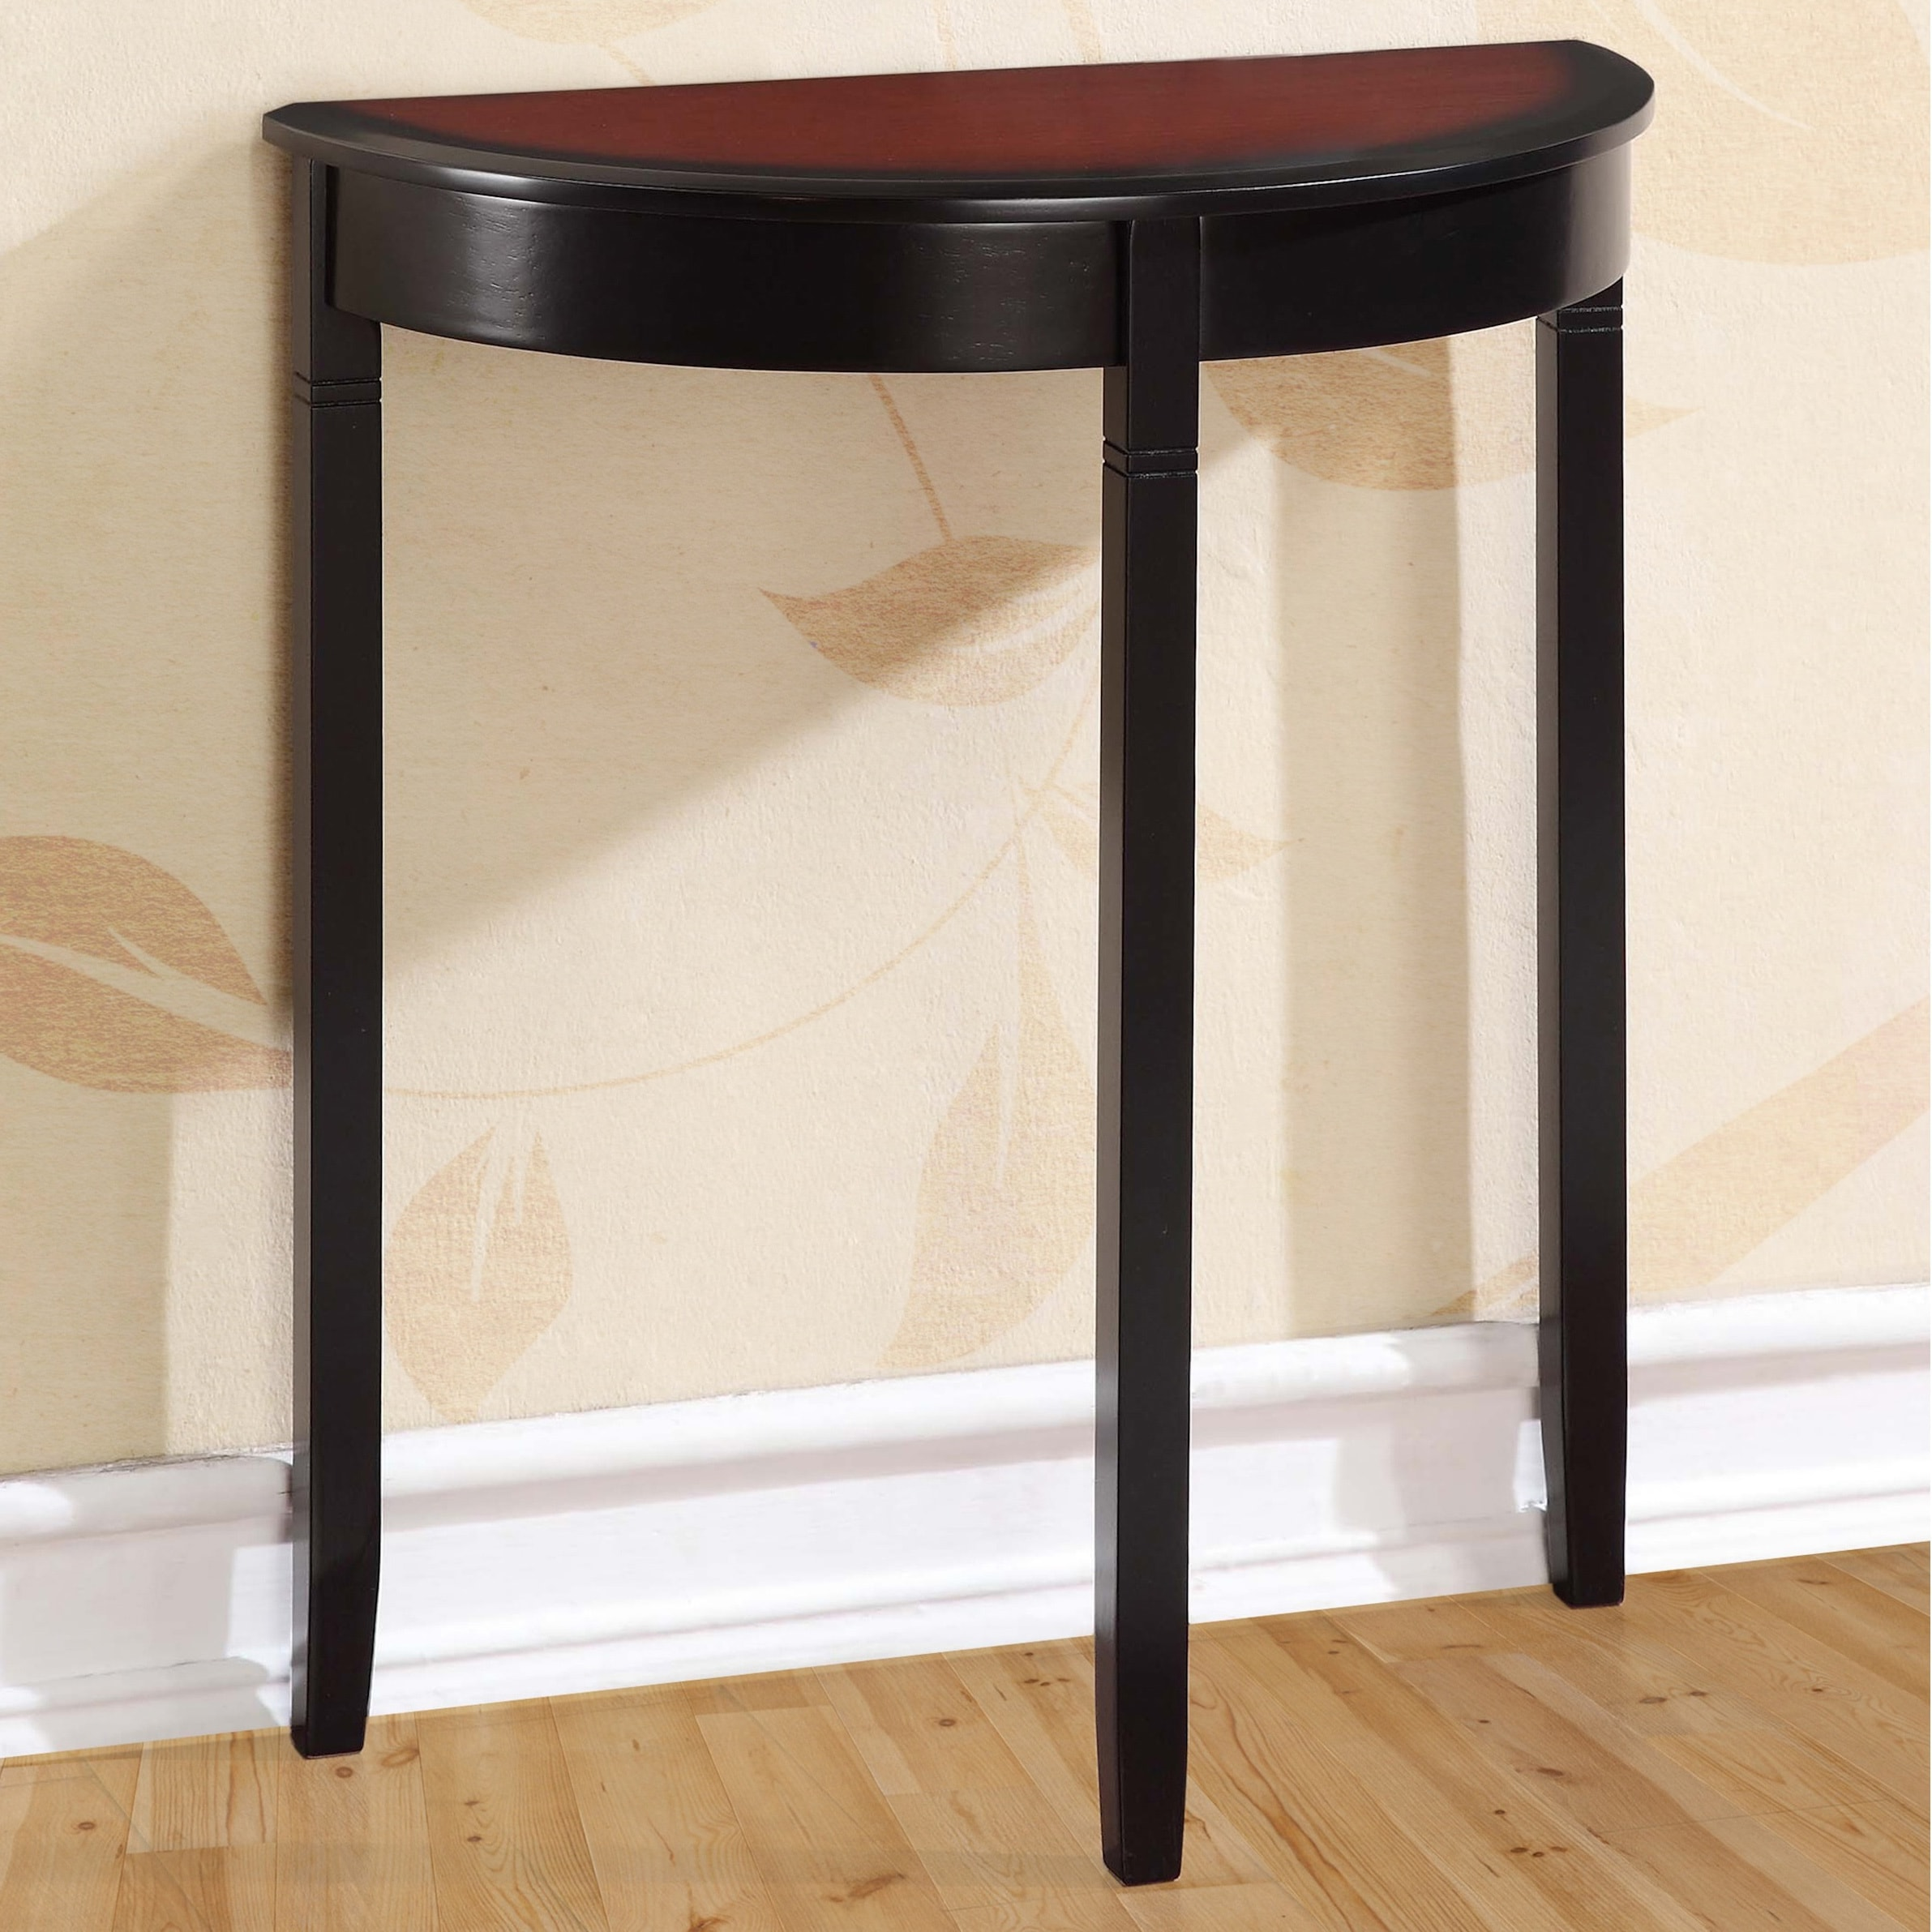 Buy Semi Circle Coffee, Console, Sofa U0026 End Tables Online At Overstock |  Our Best Living Room Furniture Deals